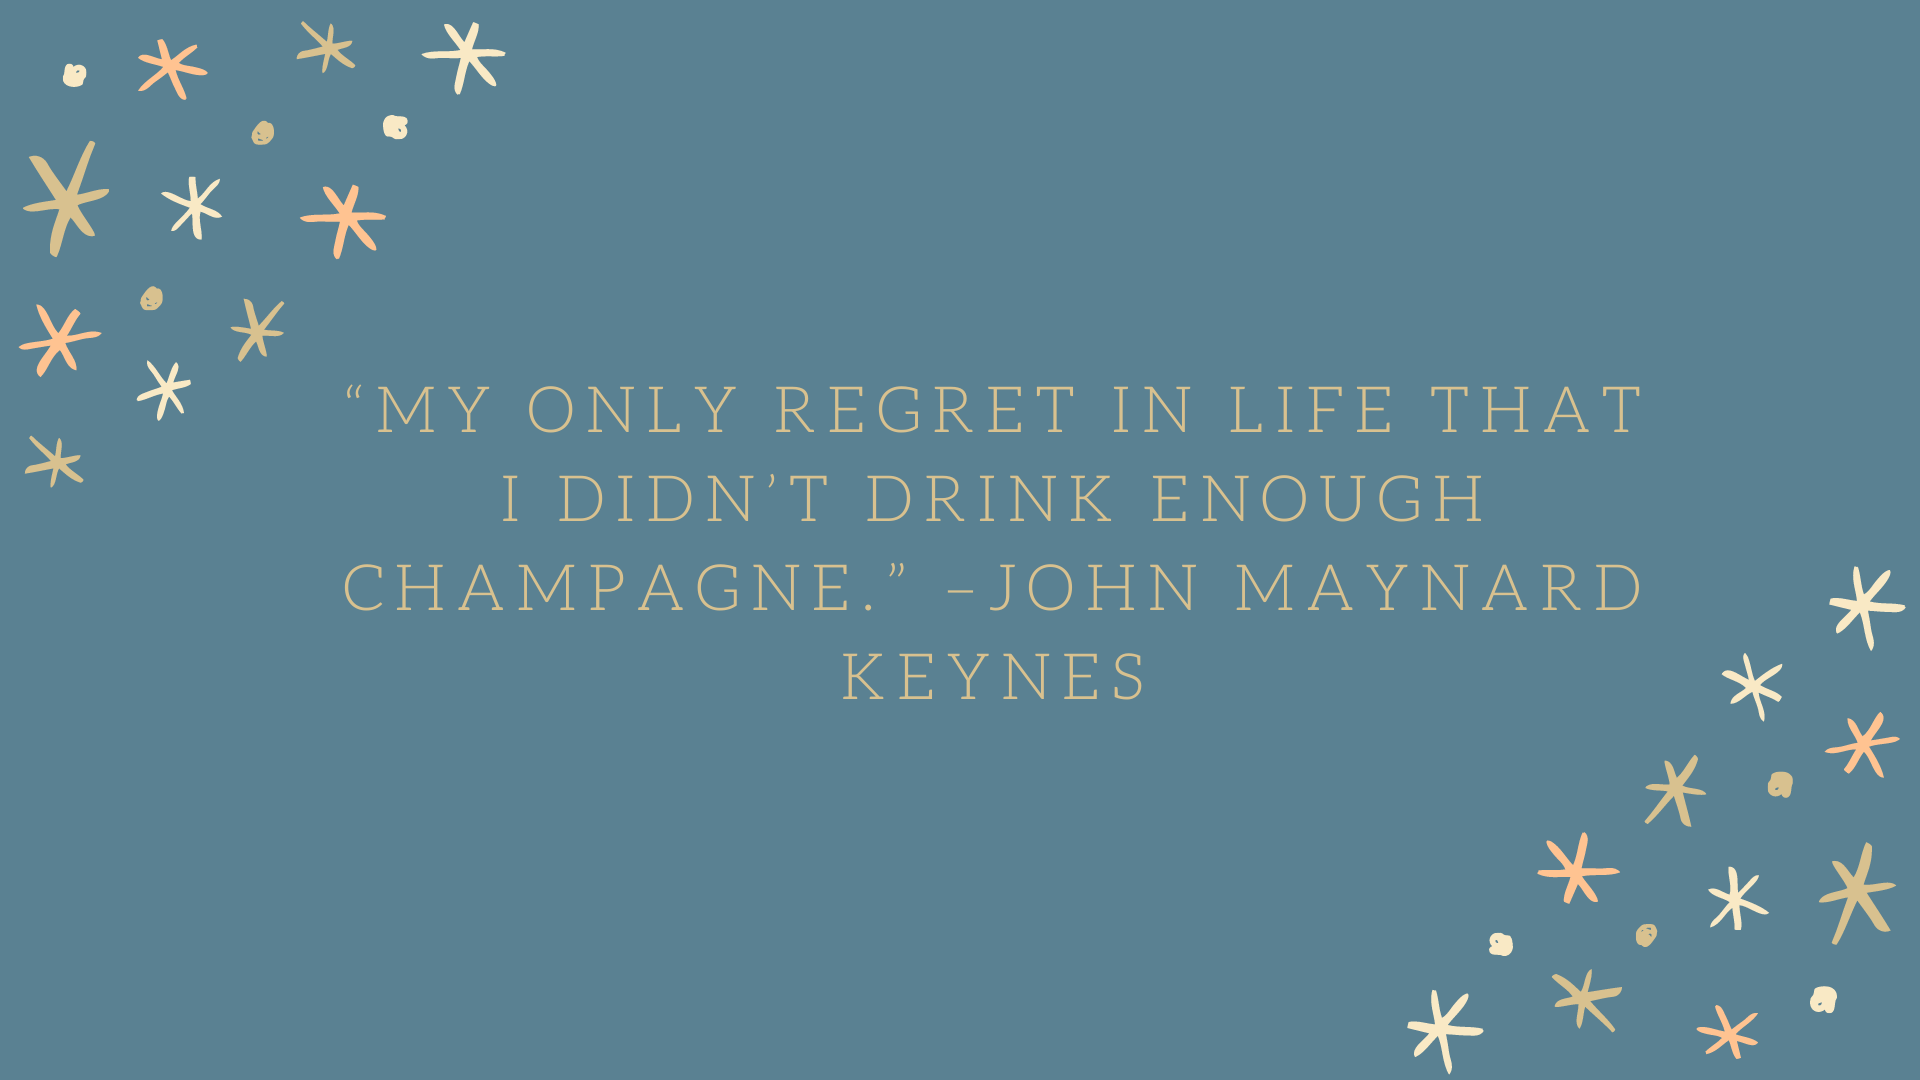 """My only regret in life that I didn't drink enough champagne."" –John Maynard Keynes"